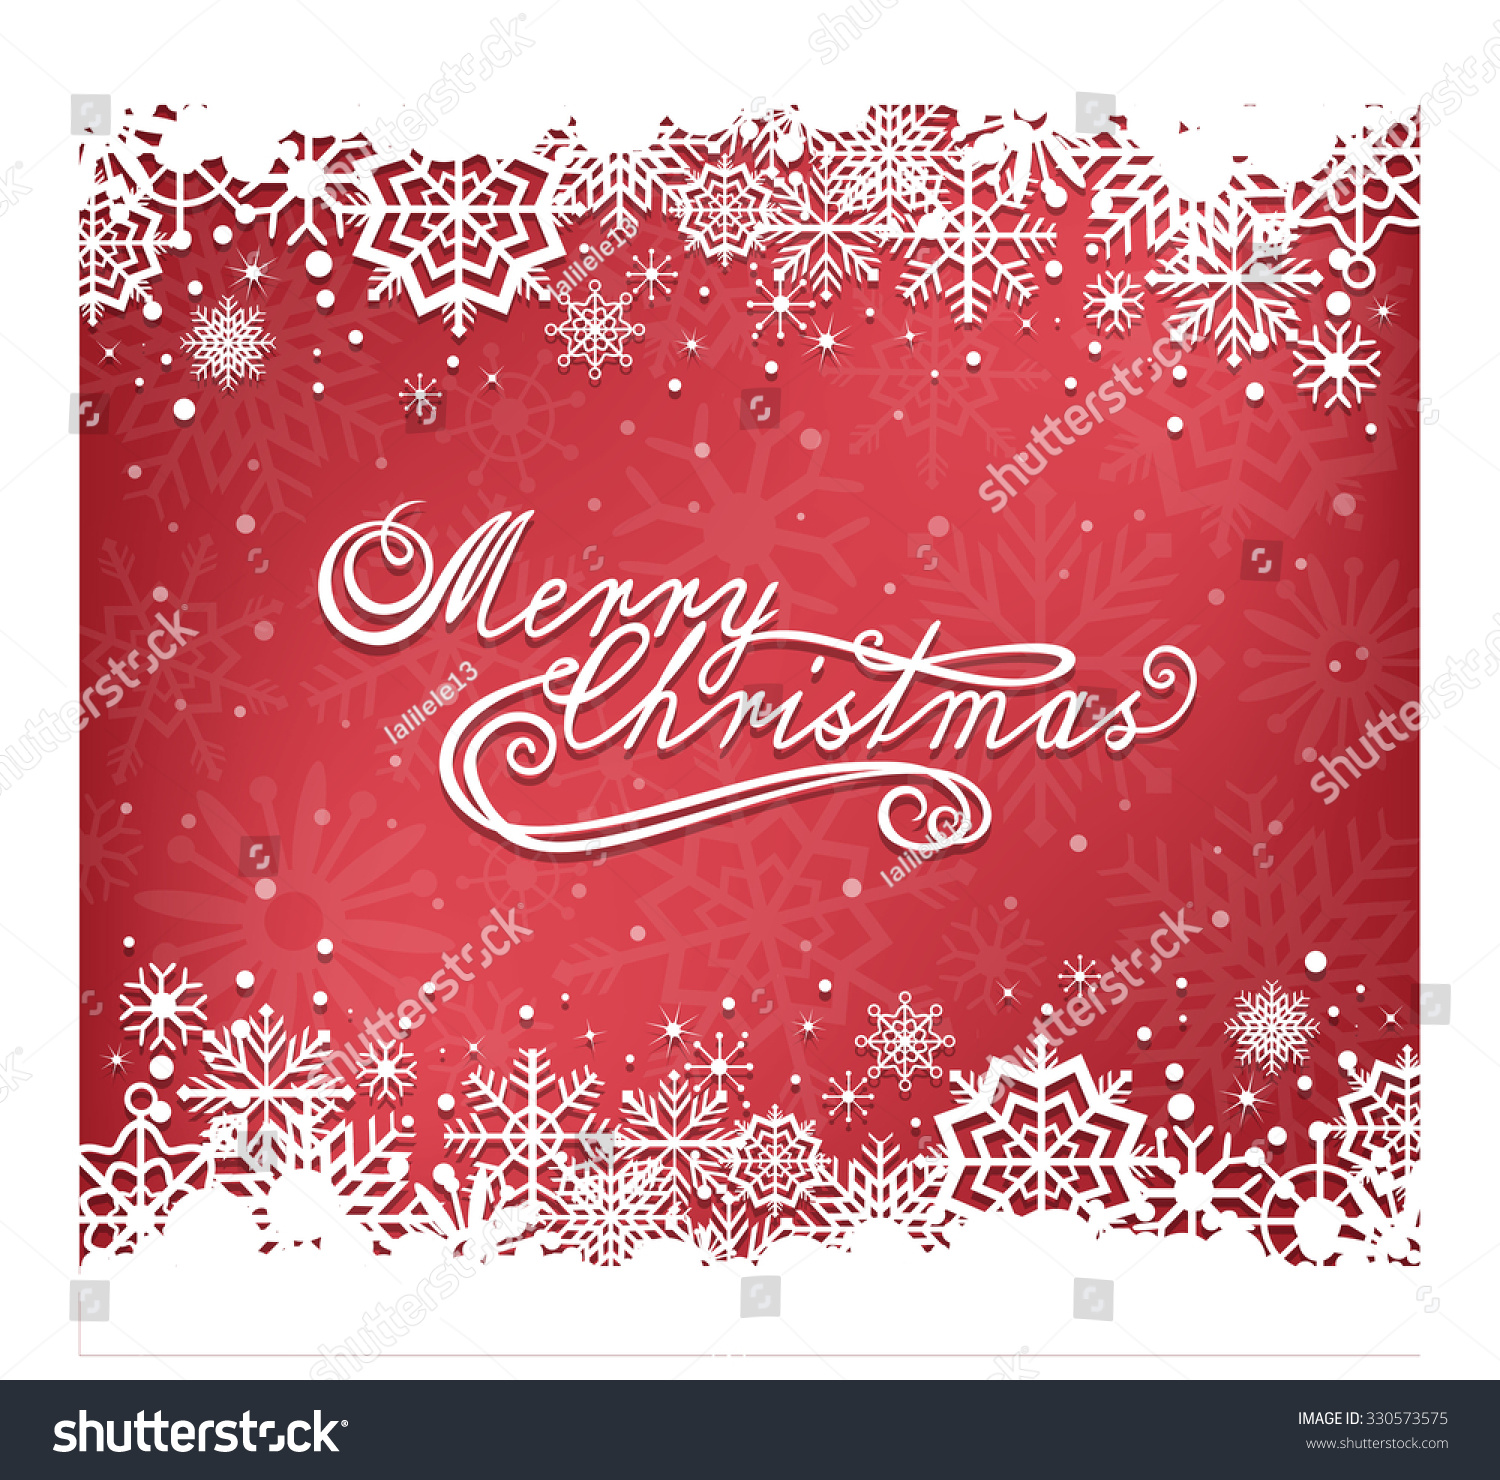 beautiful christmas card design collection - Beautiful Christmas Cards